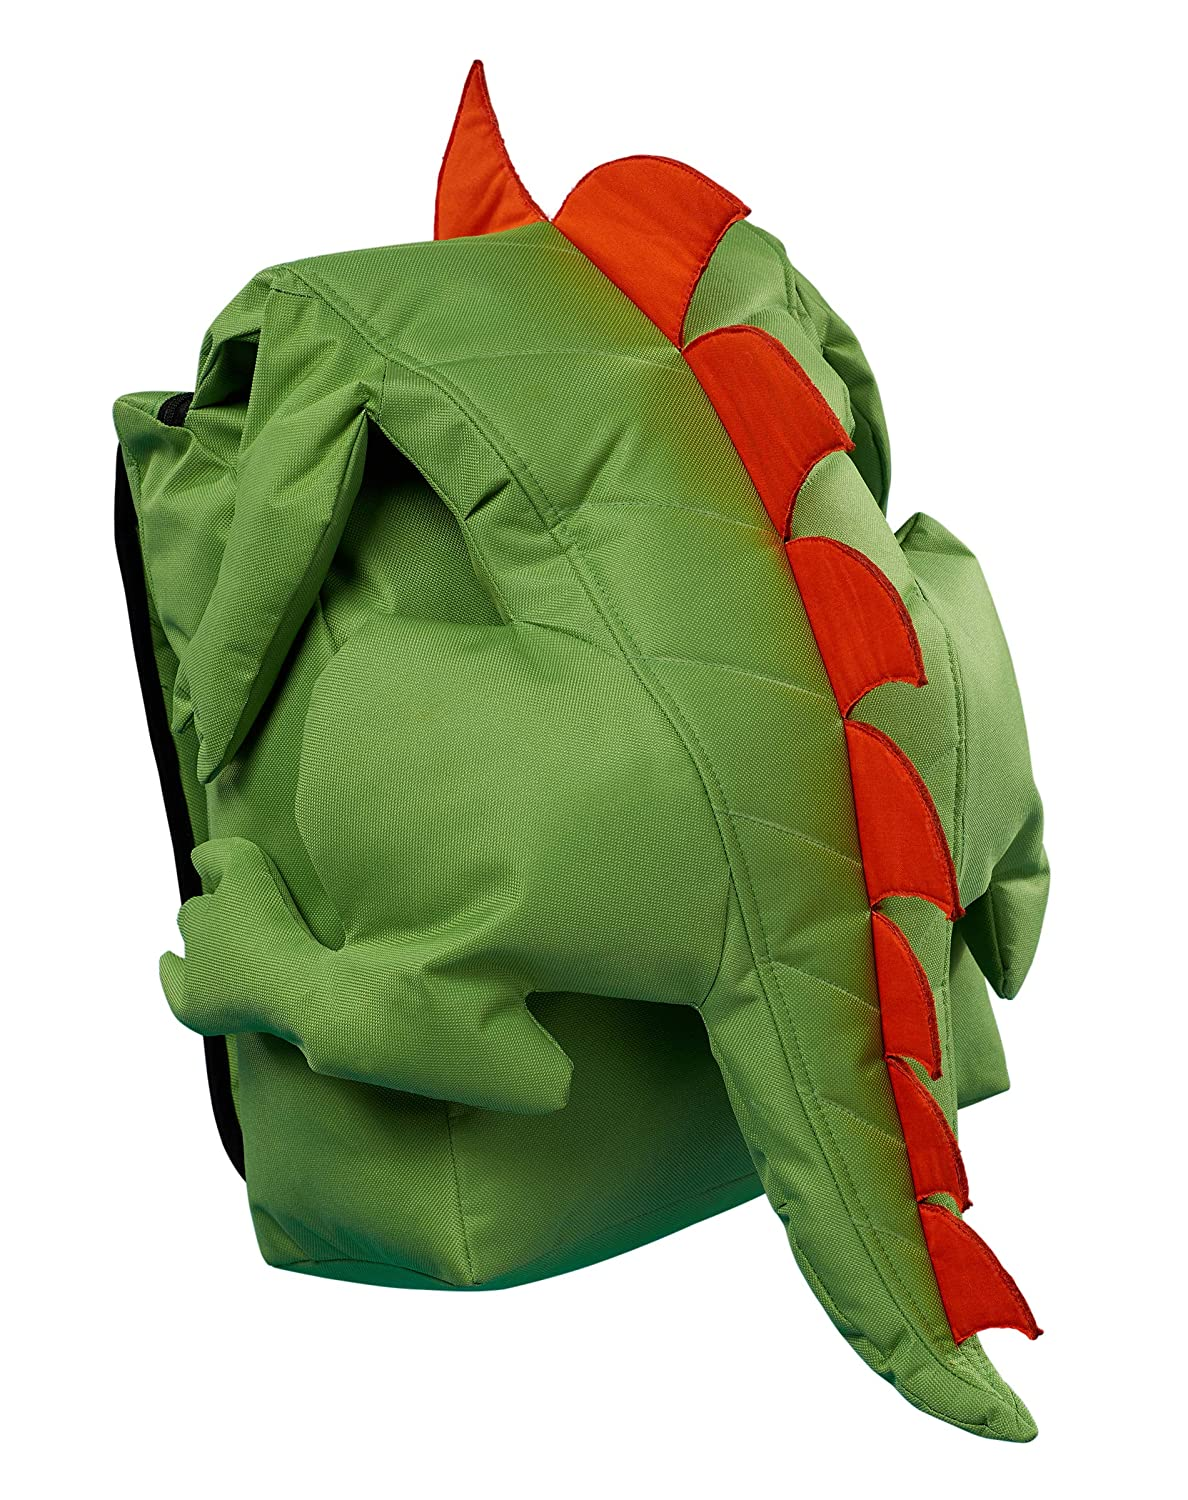 5a1e48bb11d Amazon.com: Spirit Halloween Scaly Rex Back Bling Backpack - Fortnite:  Clothing